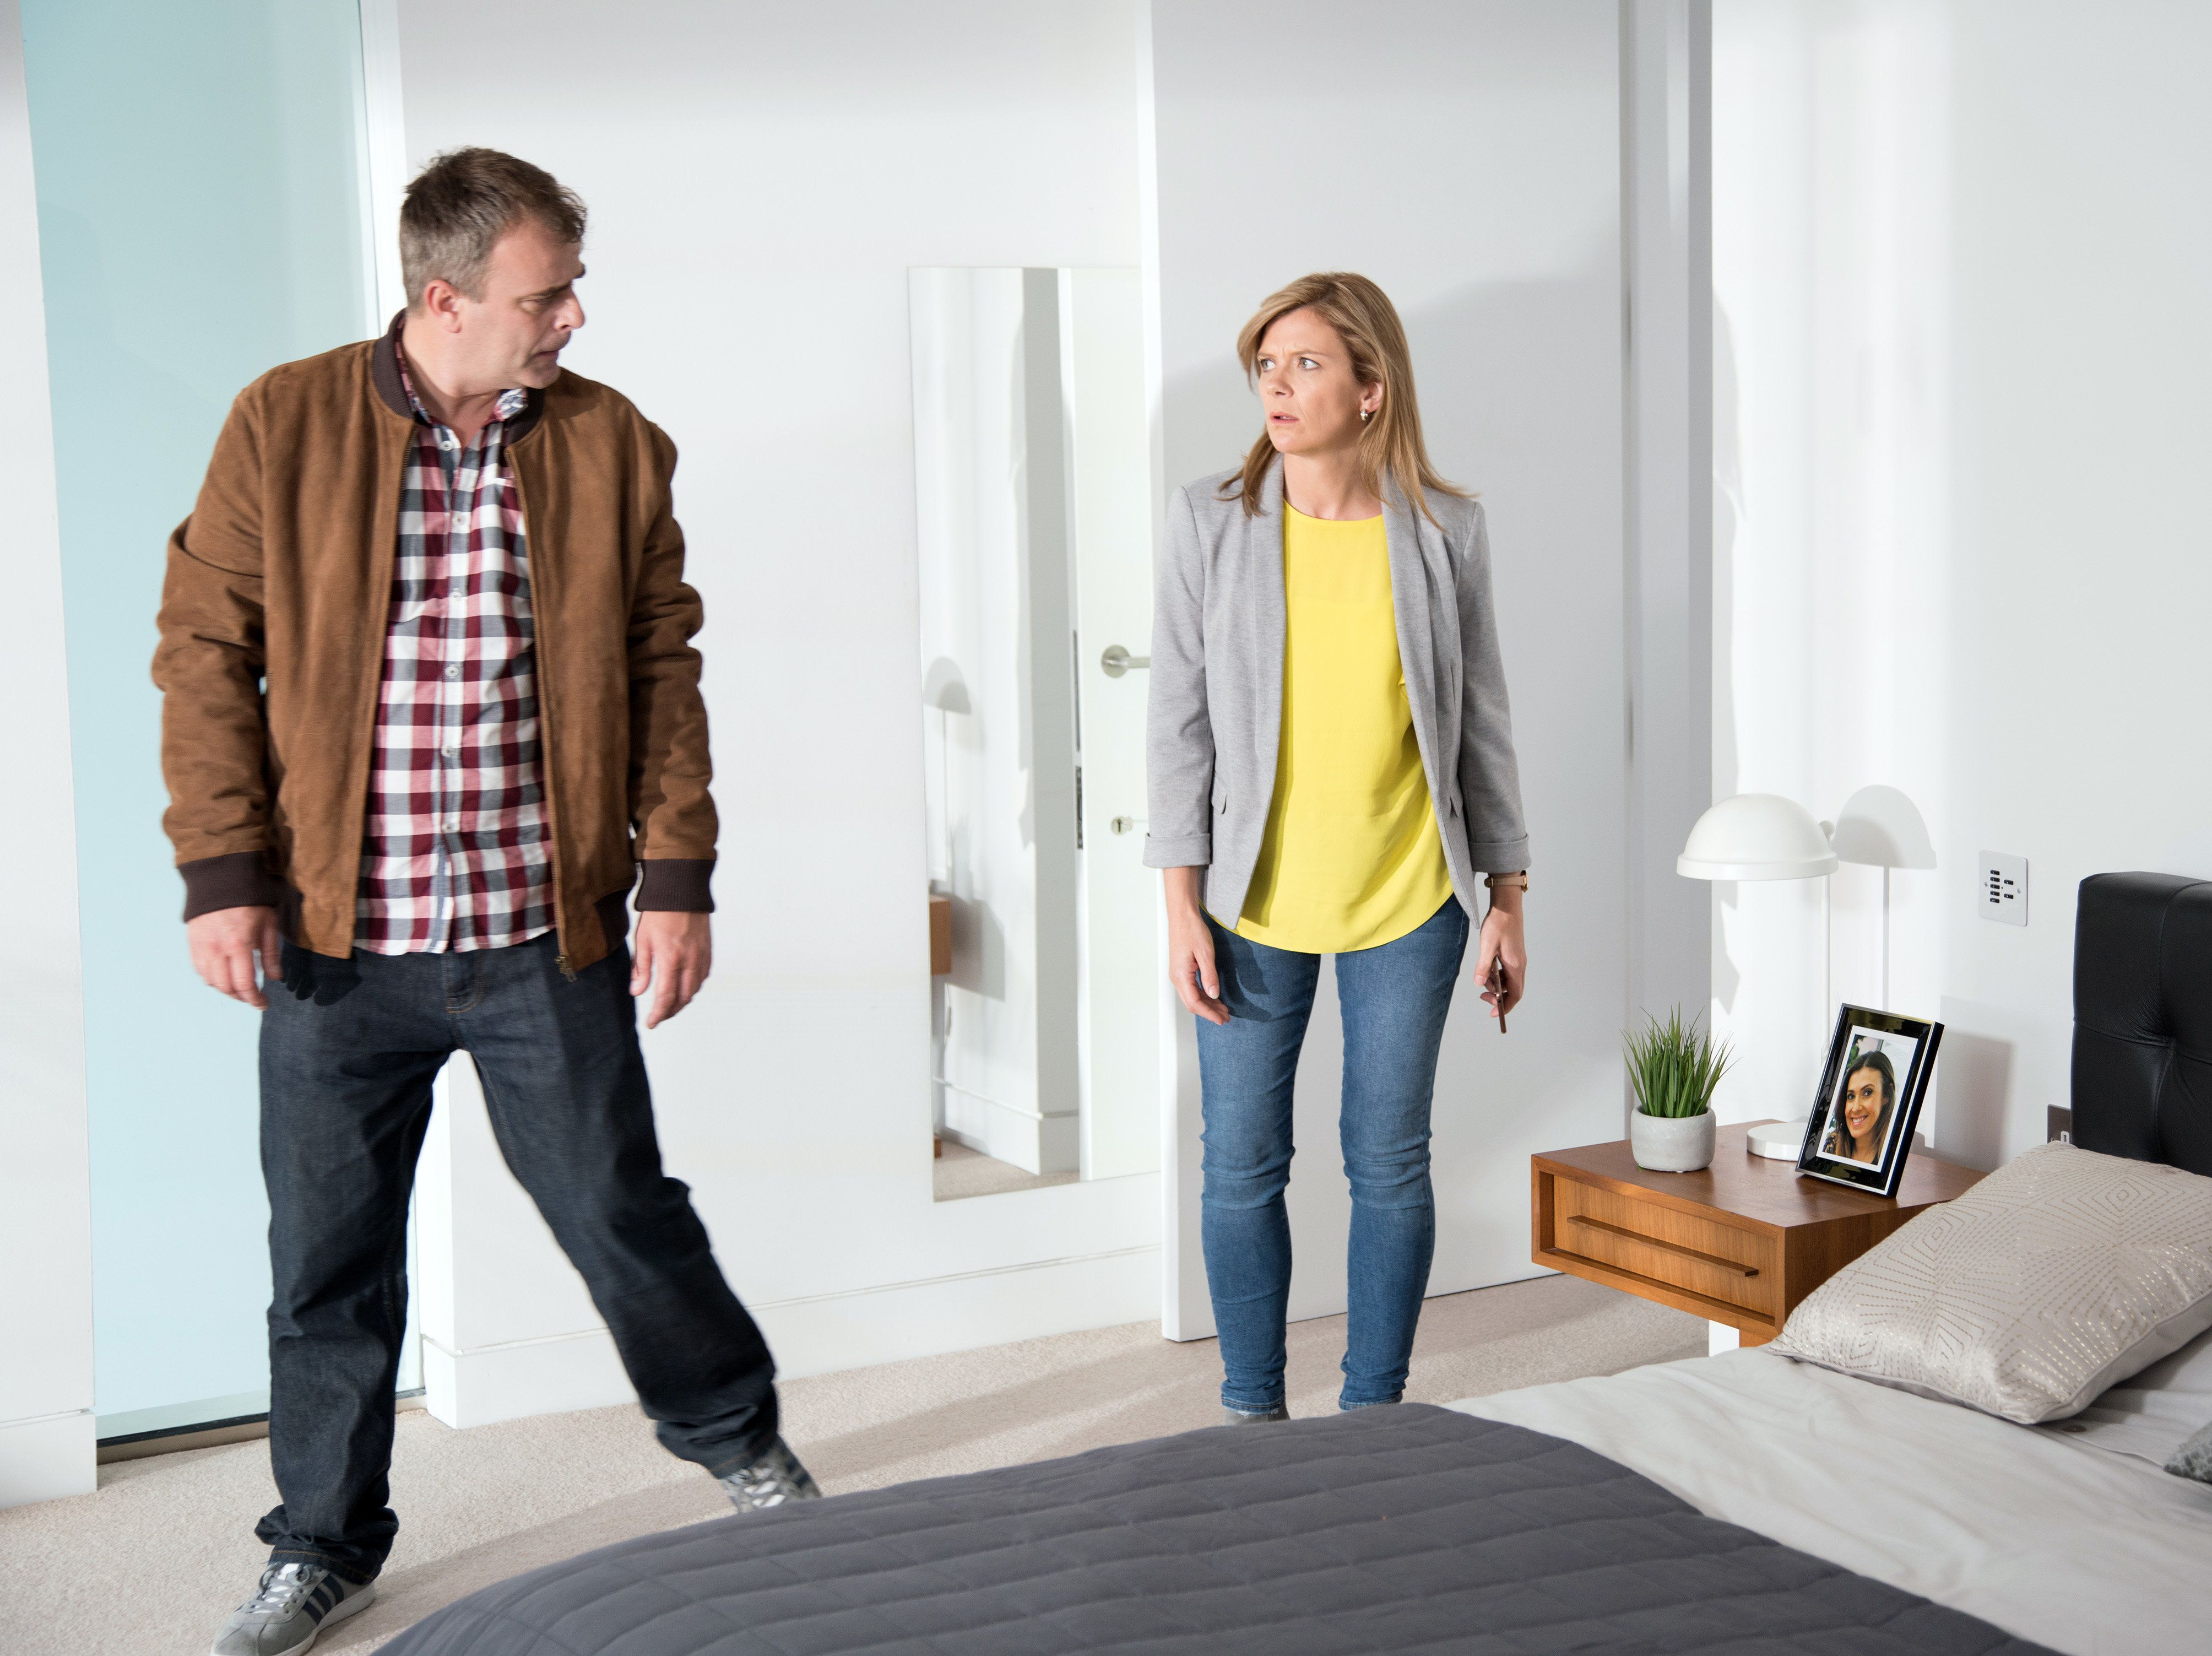 Next week, Steve and Leanne will join forces to save Michelle from her stalker